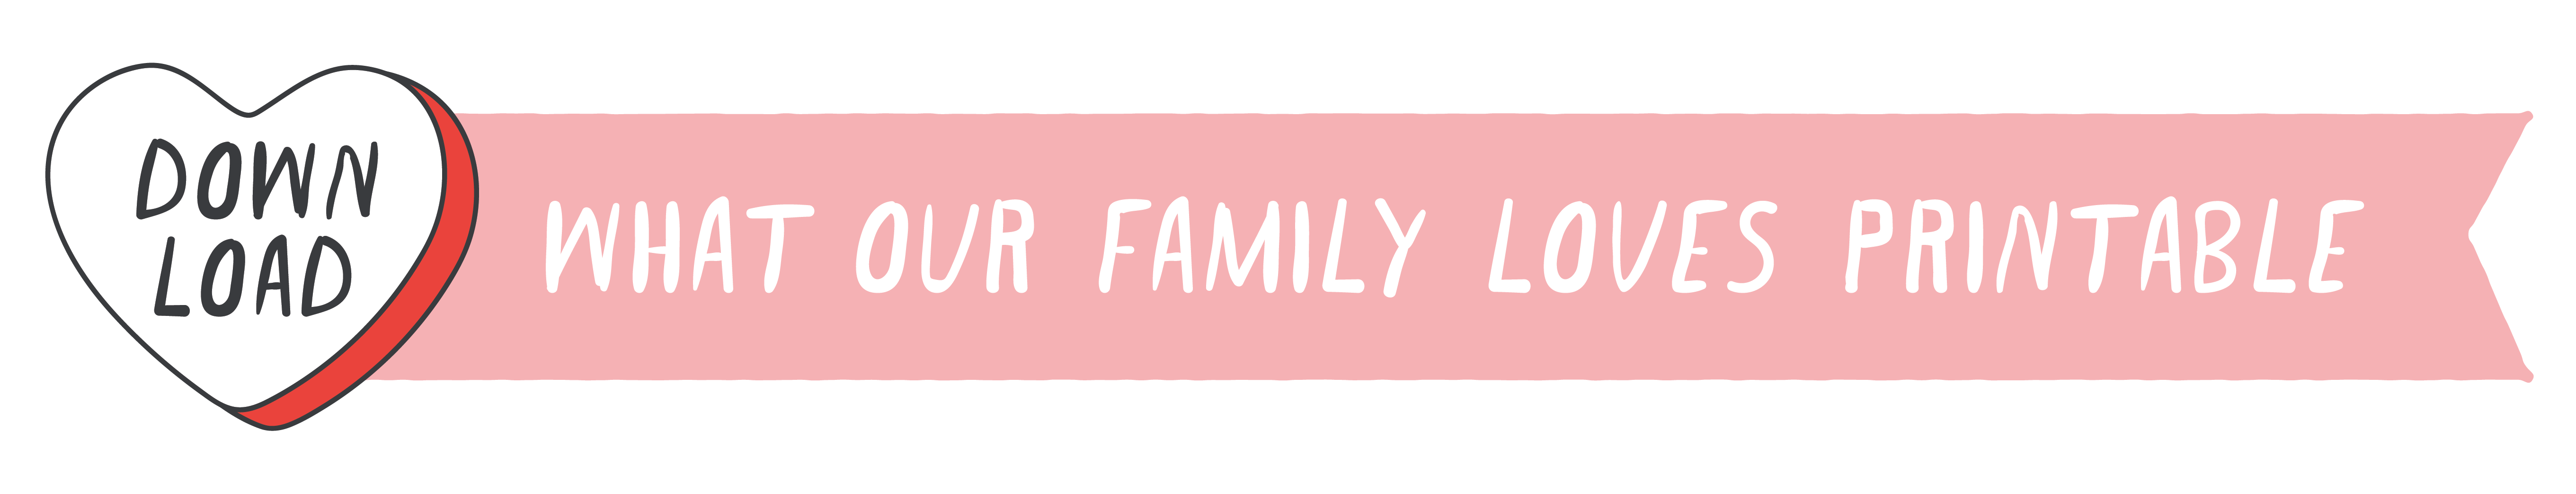 What Our Family Loves Printable